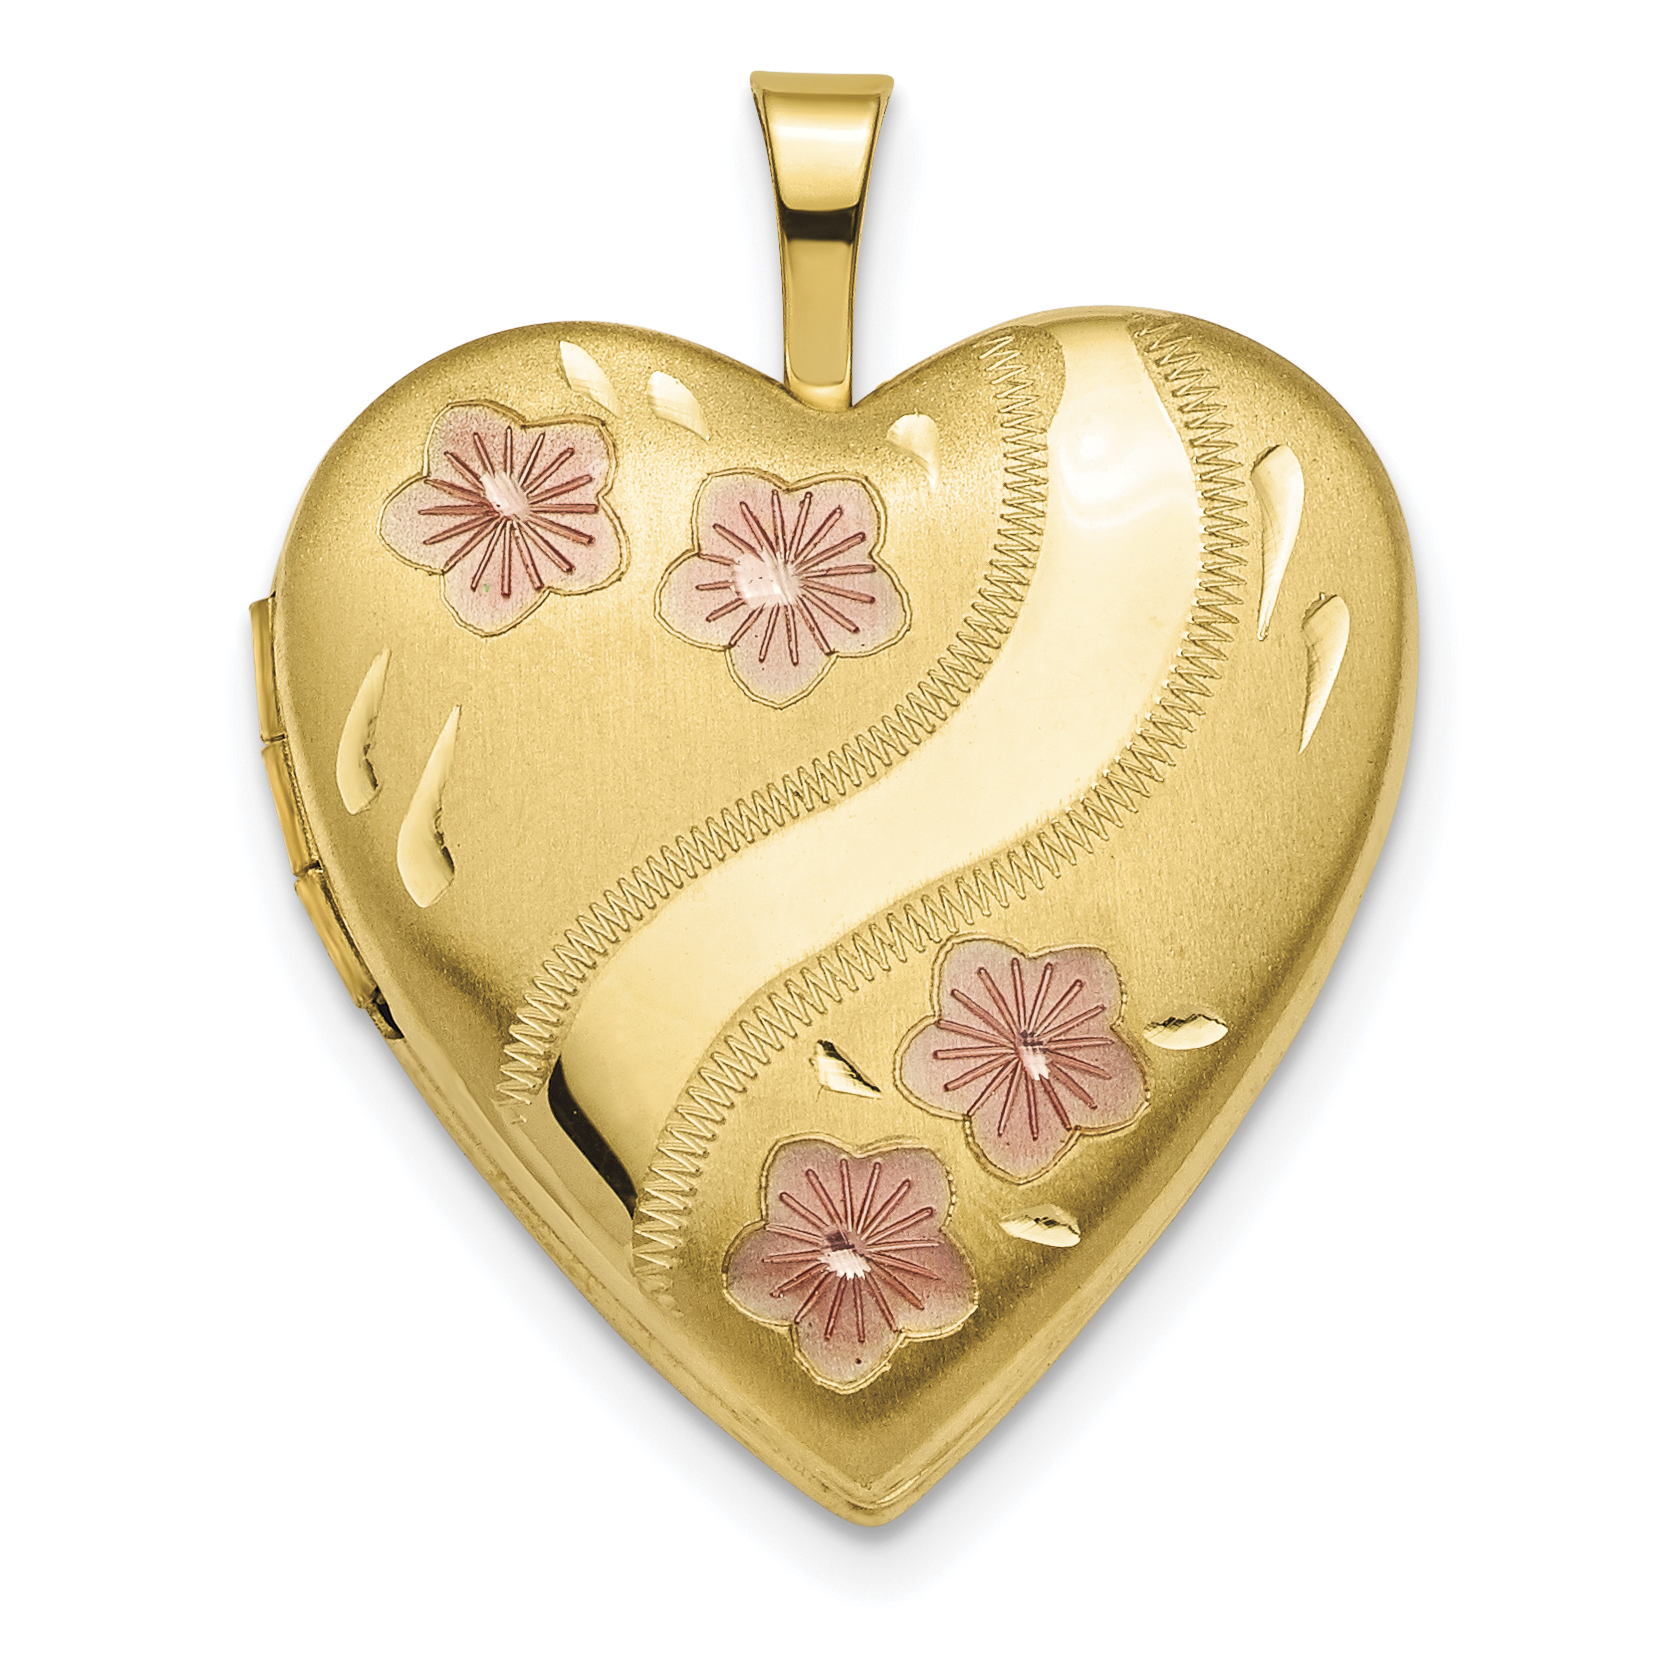 ICE CARATS 14kt Yellow Gold 20mm Pink Enameled Flowers Heart Photo Pendant Charm Locket Chain Necklace That Holds... by IceCarats Designer Jewelry Gift USA